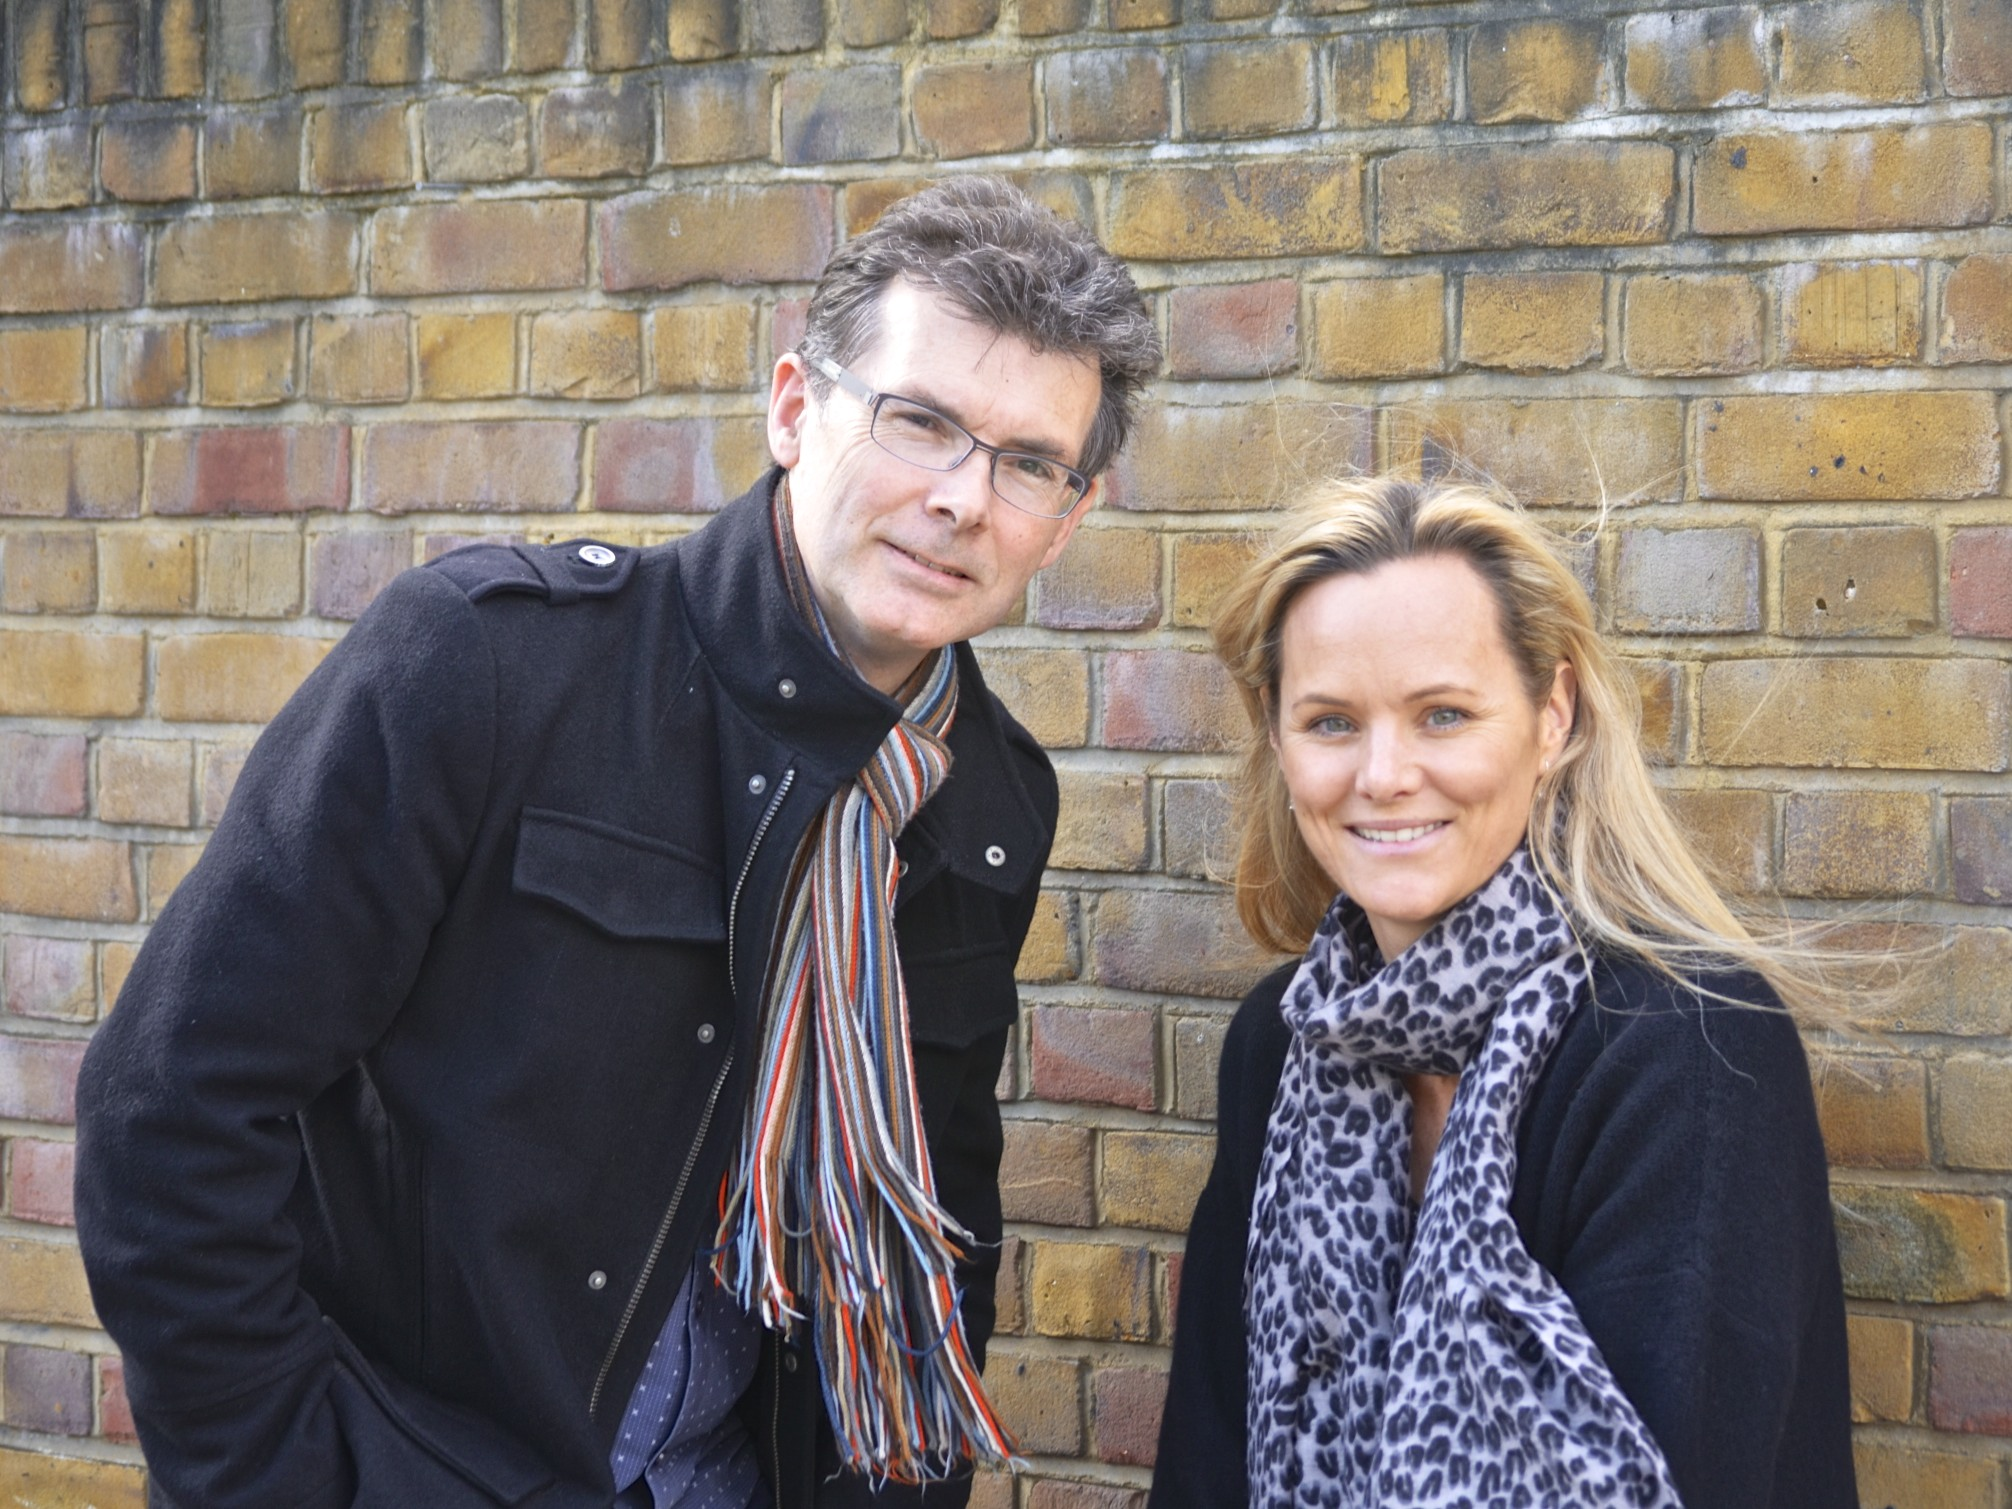 Rebecca Weir Design Director of Light IQ with Matt Keeler Award Winning Architect and Director of KSKa Architects based in W12.  sc 1 st  Askew Business Network & Light IQ | Askew Business Network